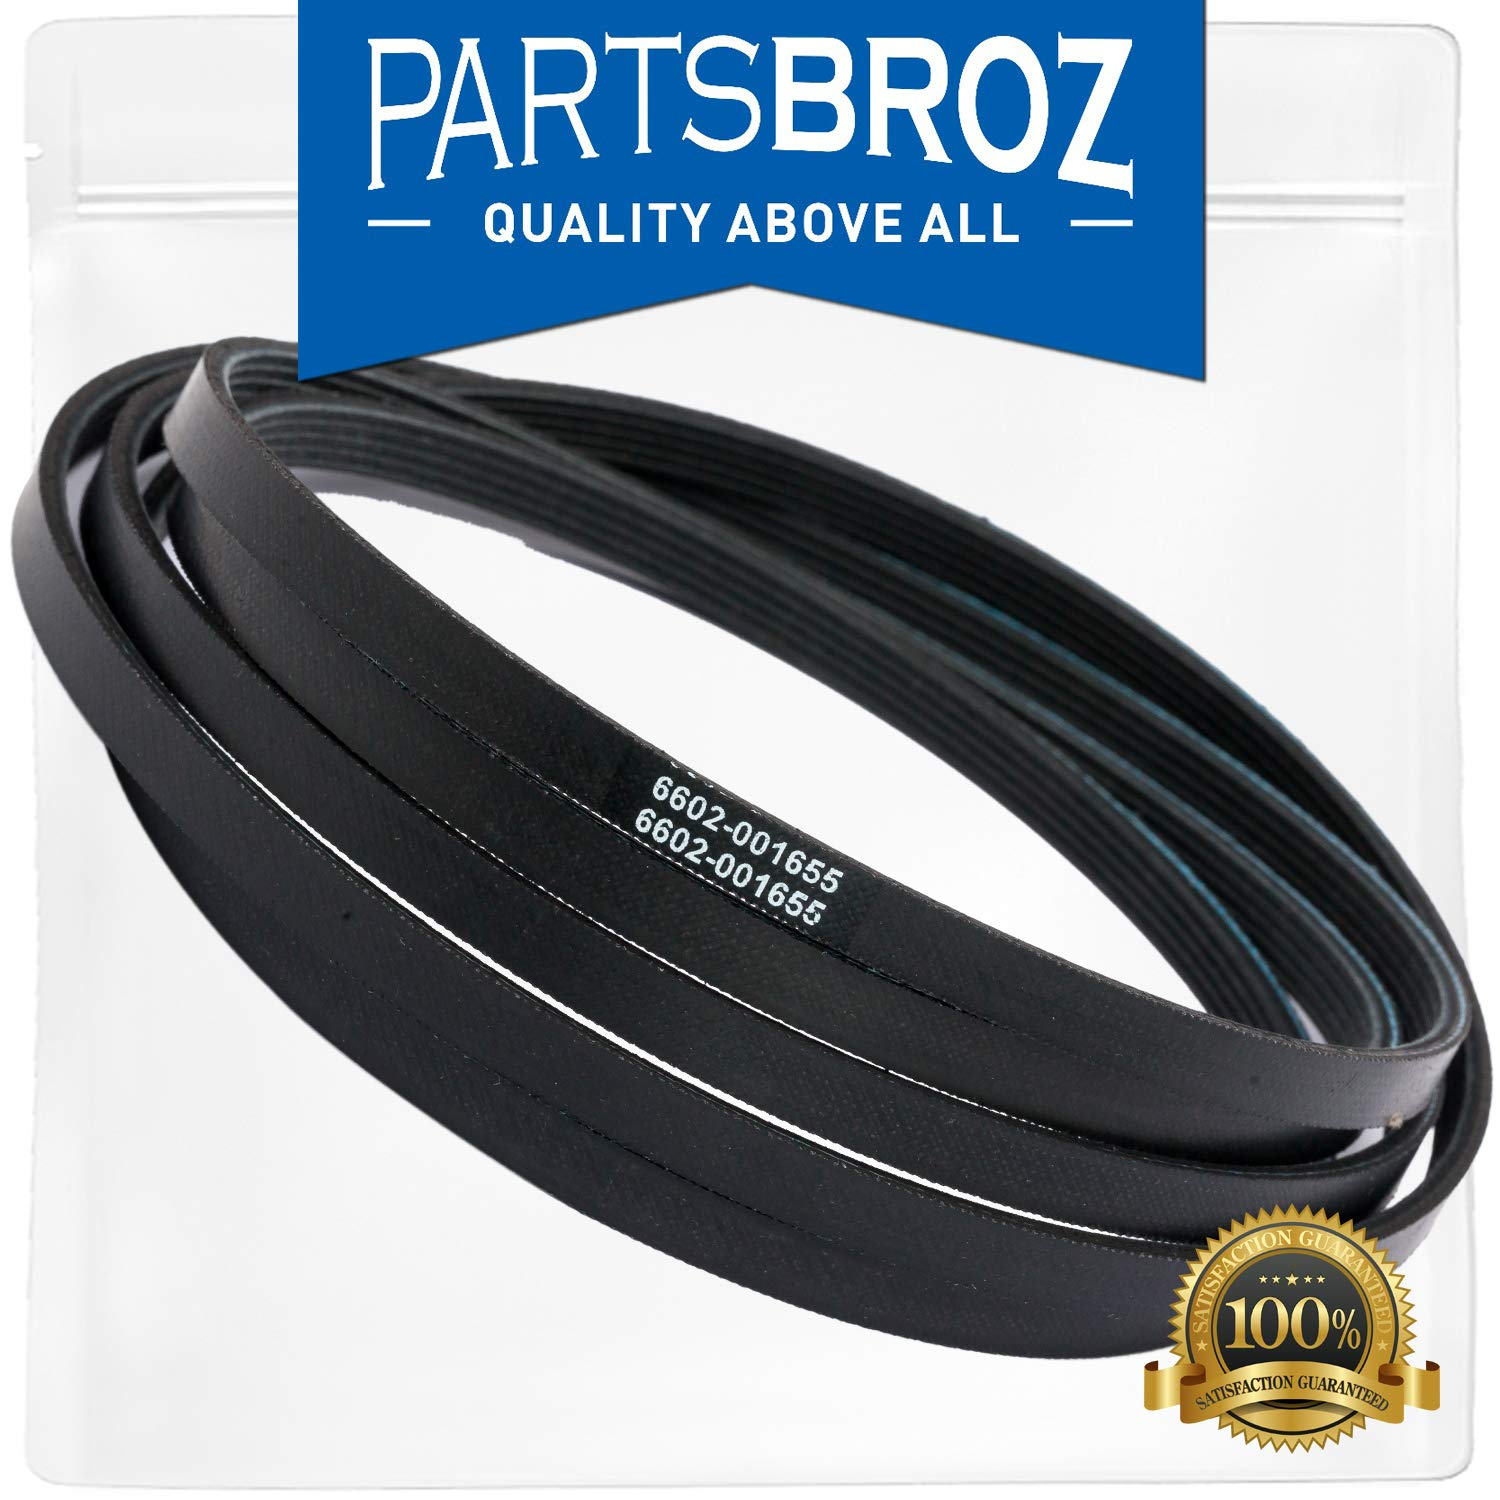 6602-001655 Dryer Drum Belt Replacement for Samsung Dryer by PartsBroz - Replaces Part Numbers AP4373659, 1935594, 6602-001314, PS4133825